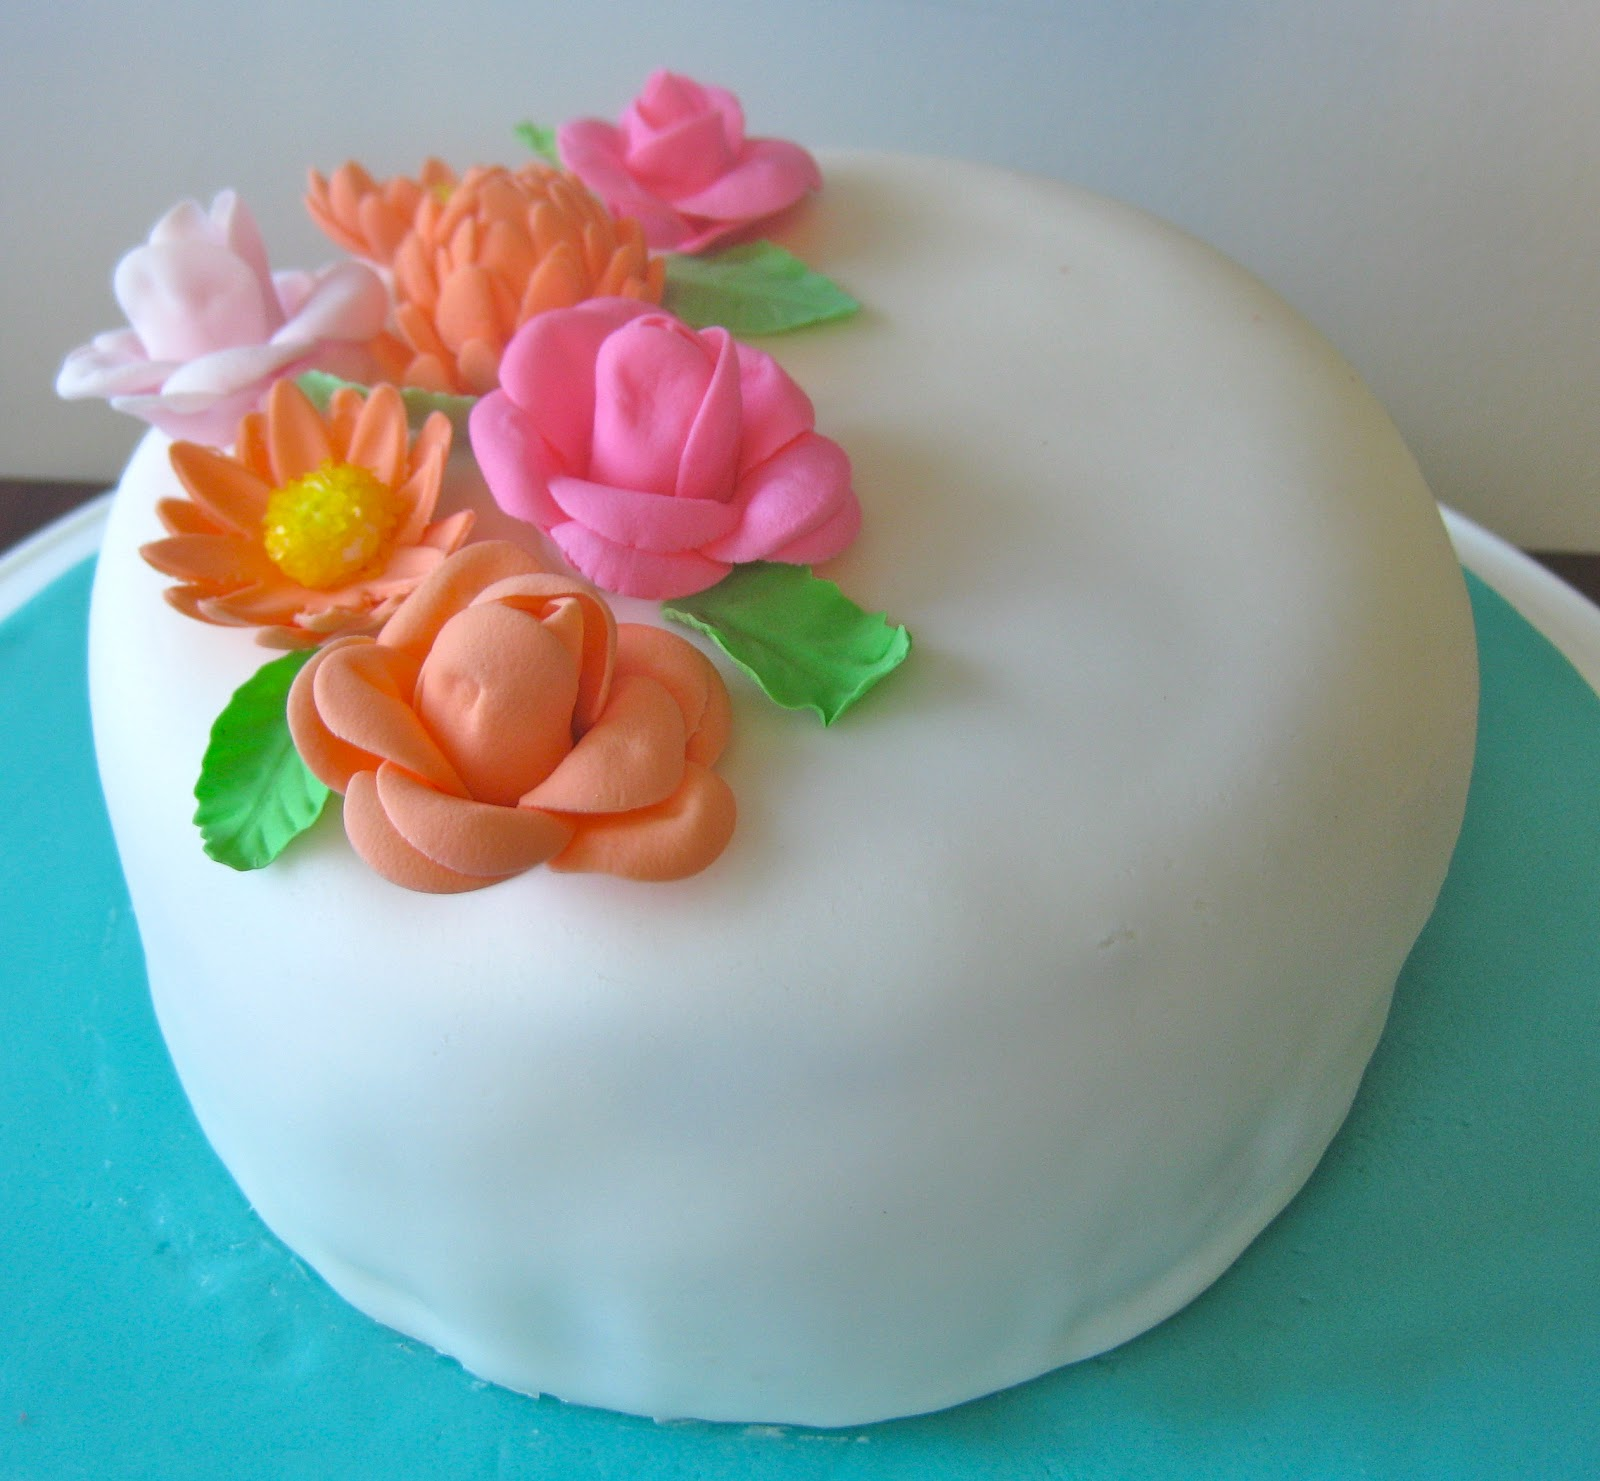 Wilton Cake Decorating Classes Uk : Pixie Crust